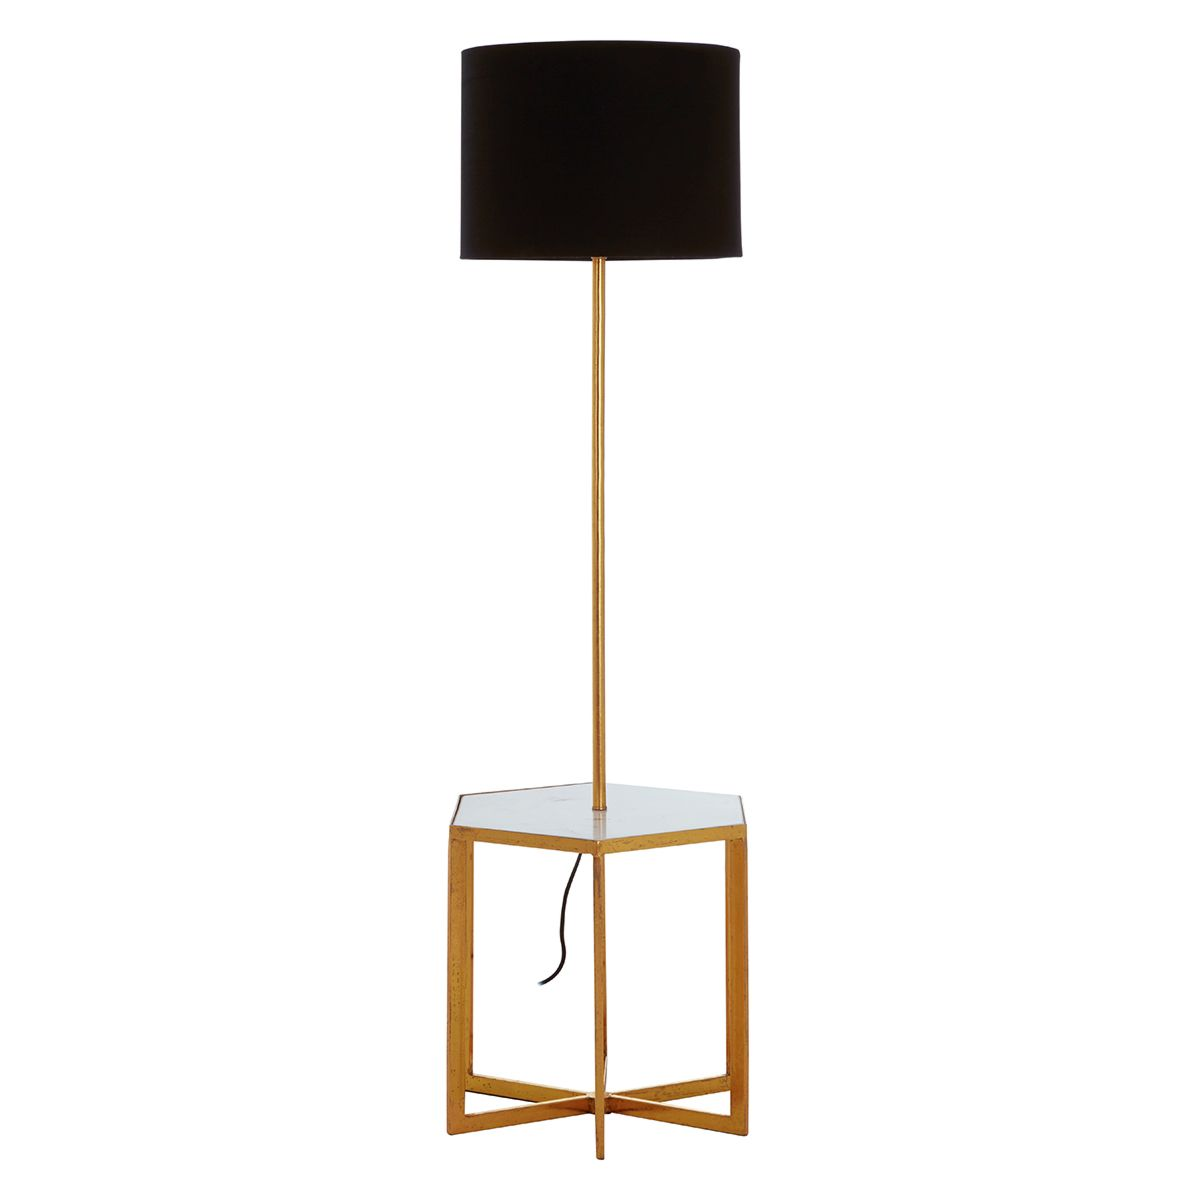 Premier Housewares Sika Floorstanding Lamp in Marble/Iron - Black/Gold Finish